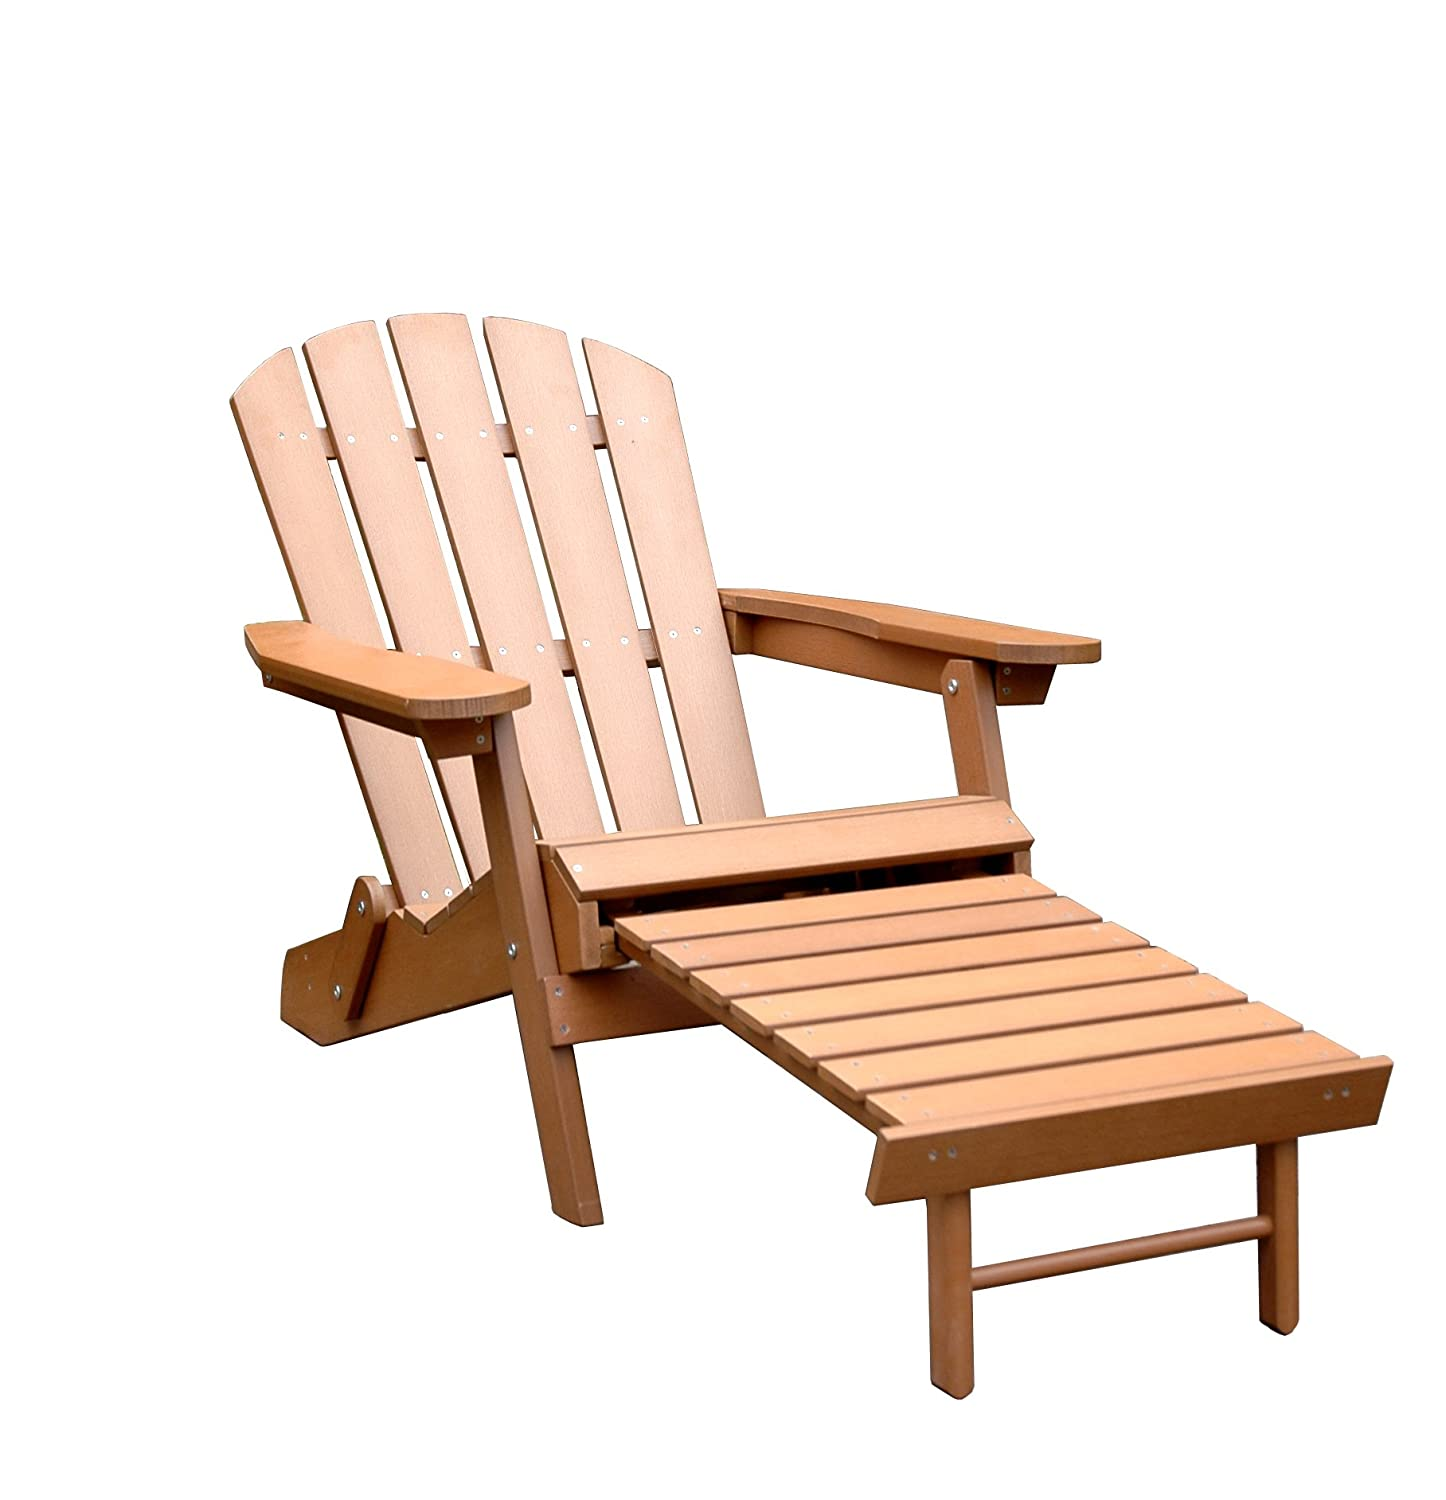 Amazon Merry Garden Faux Wood Folding Adirondack Chair with